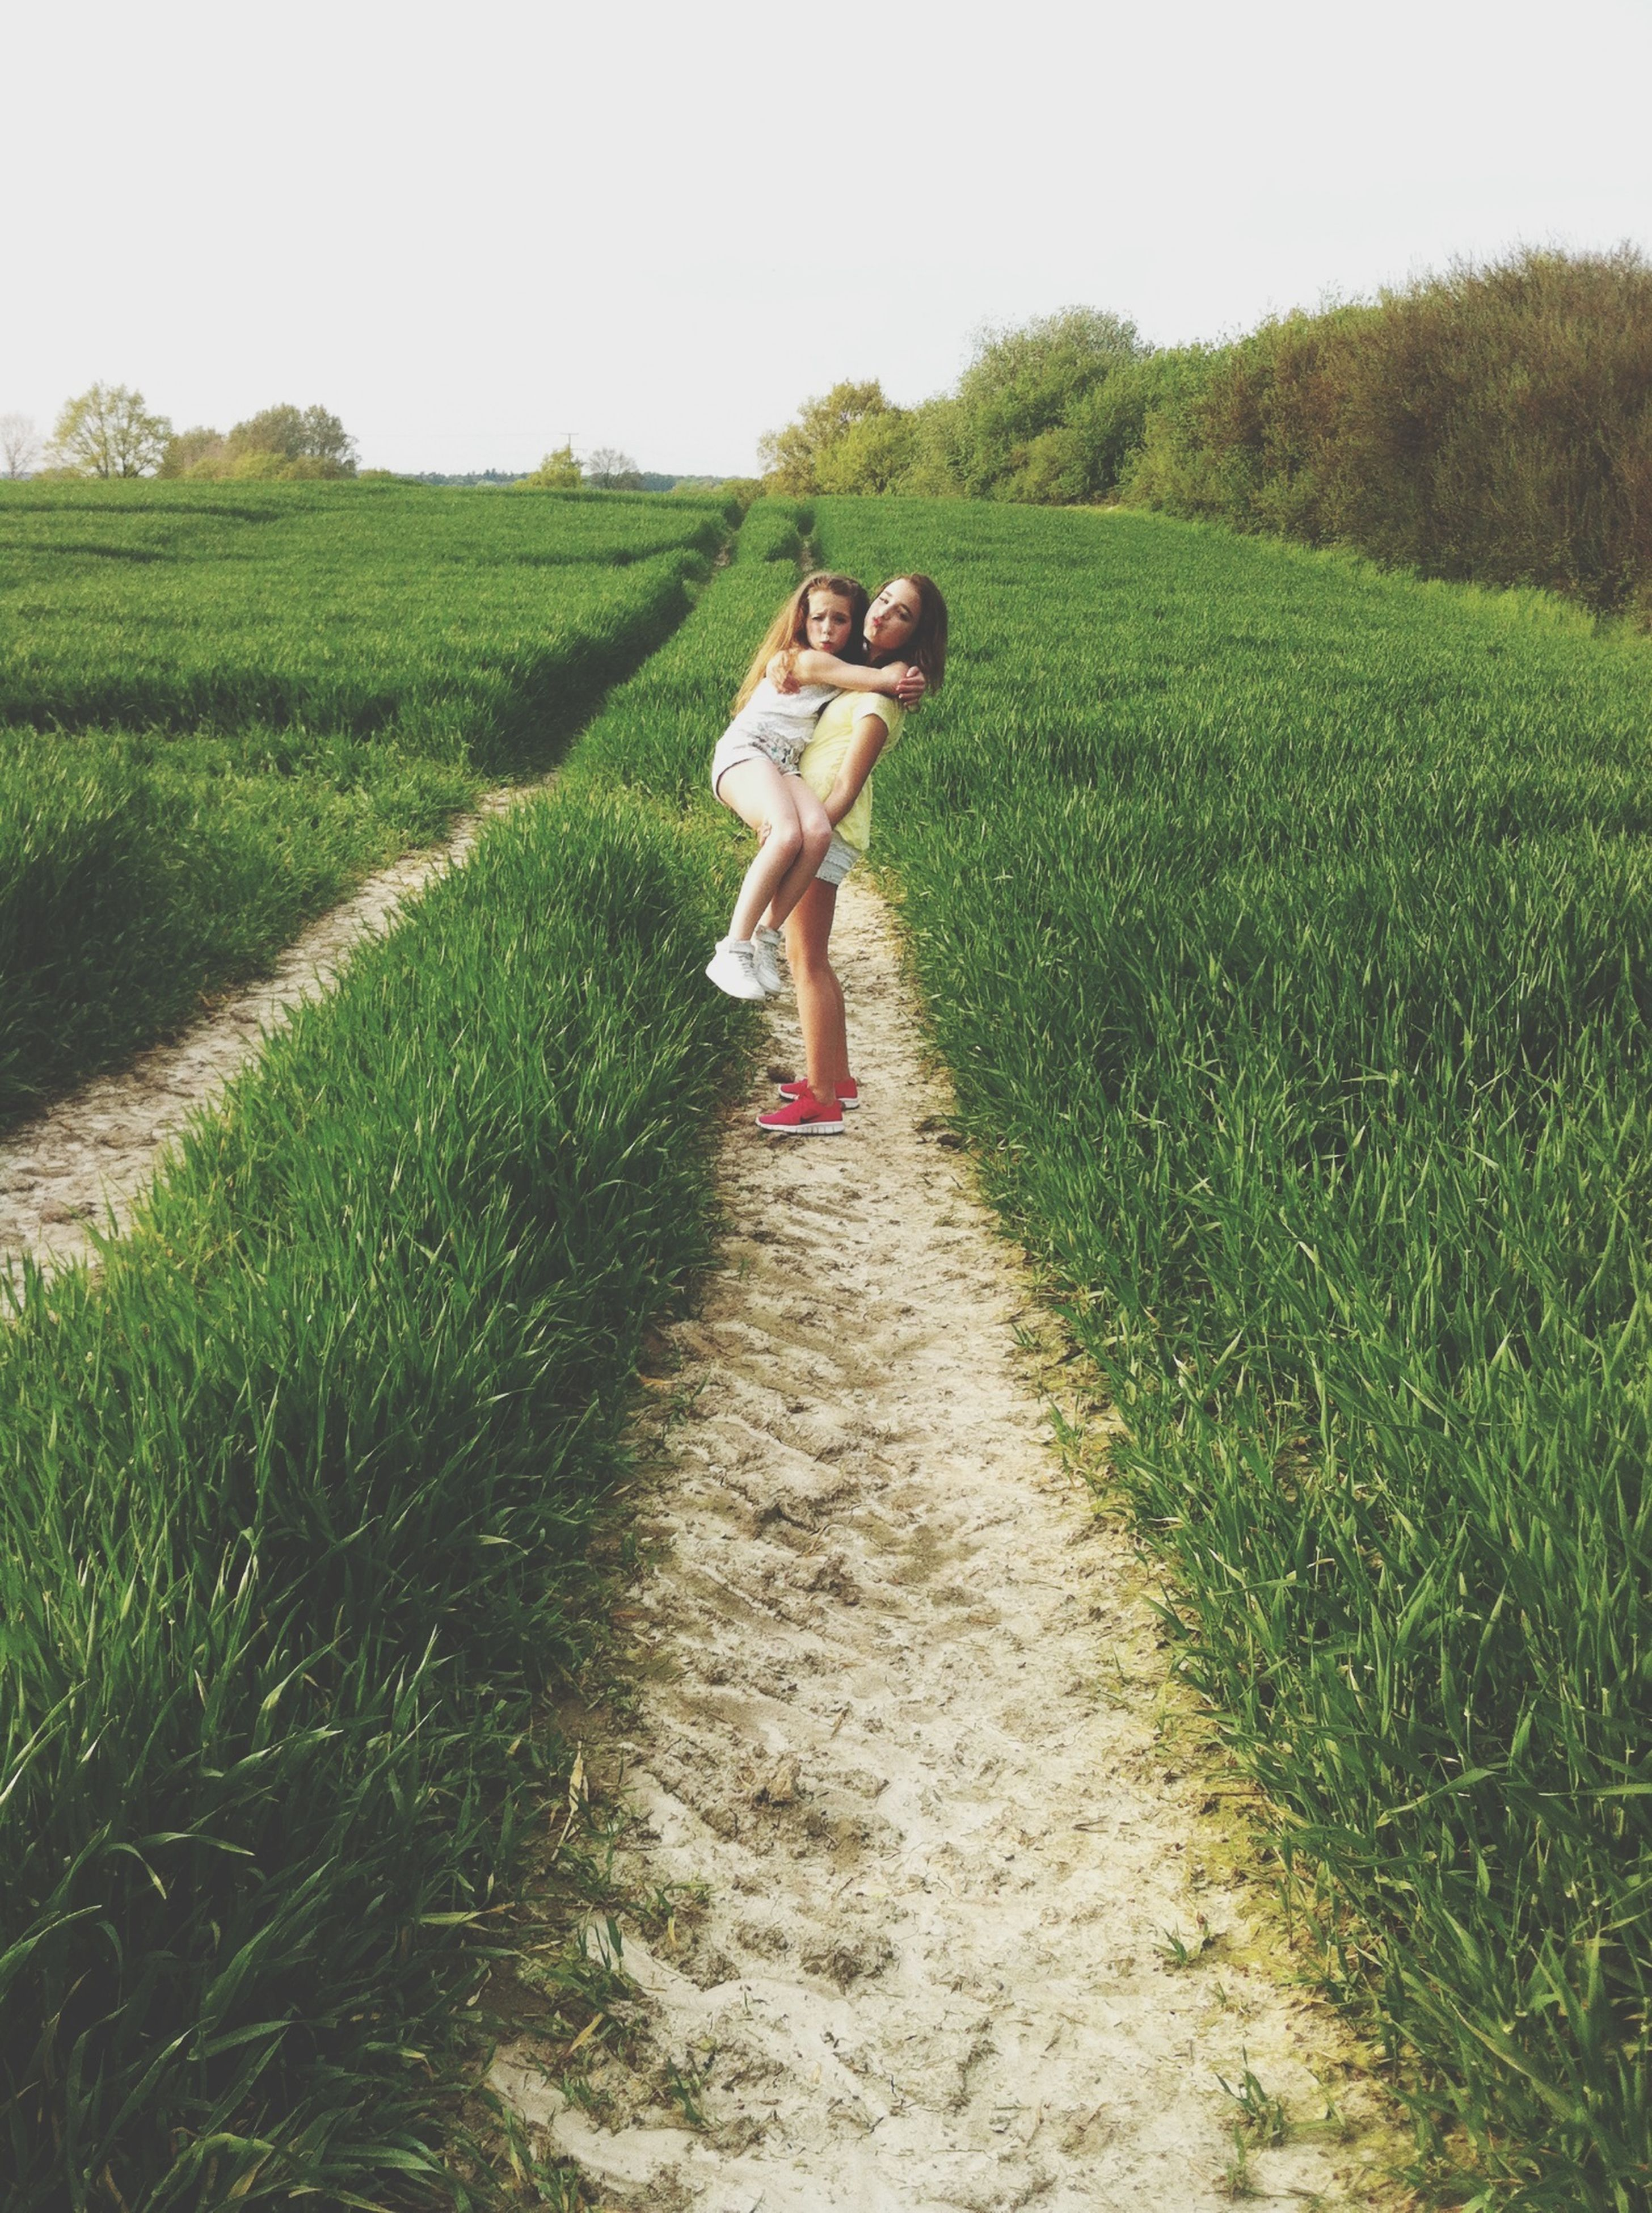 grass, full length, lifestyles, leisure activity, field, casual clothing, childhood, green color, grassy, growth, walking, boys, elementary age, girls, landscape, agriculture, rural scene, rear view